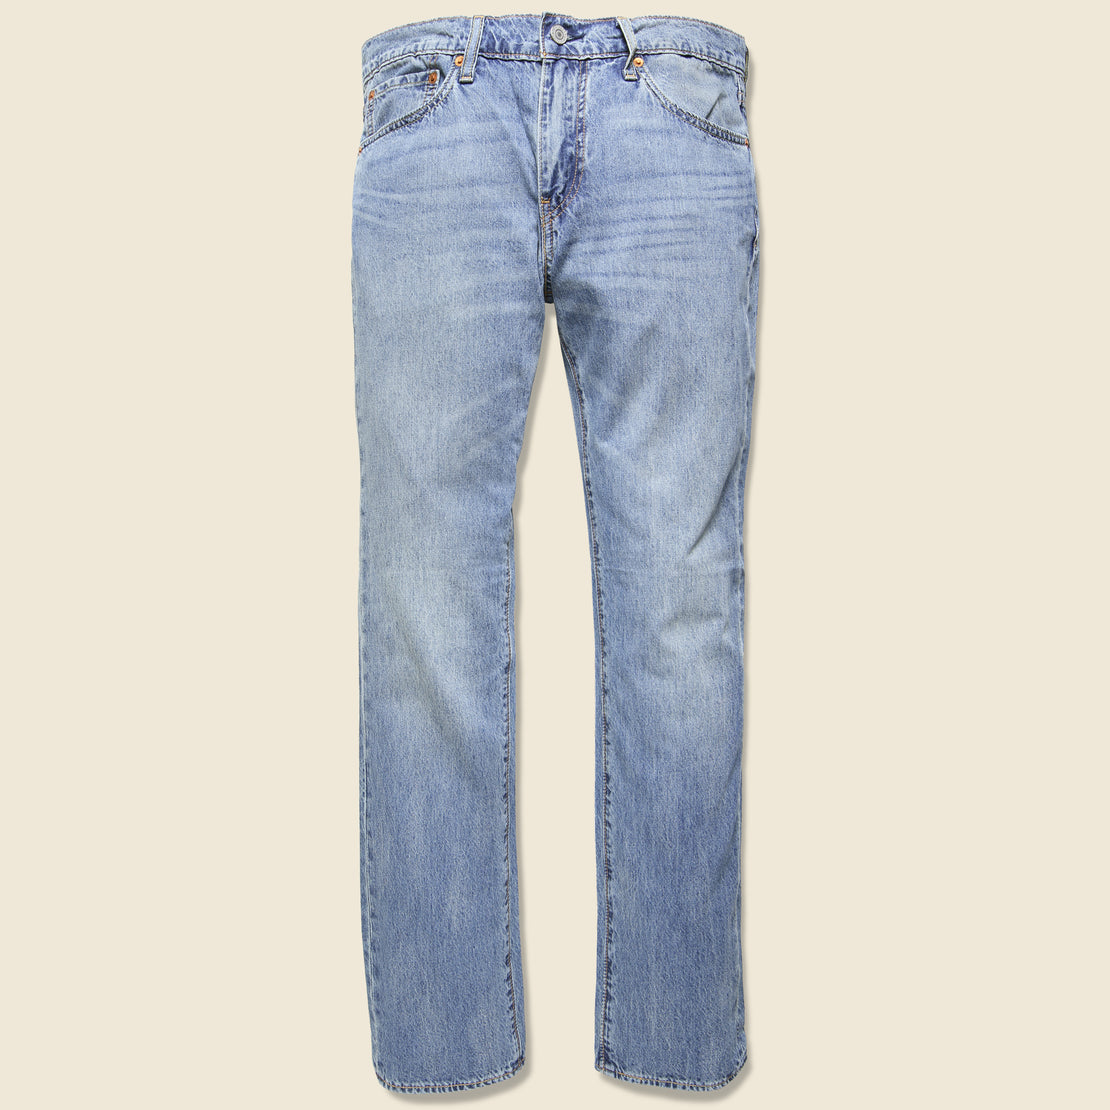 Levis Premium 511 Slim Jean - English Channel